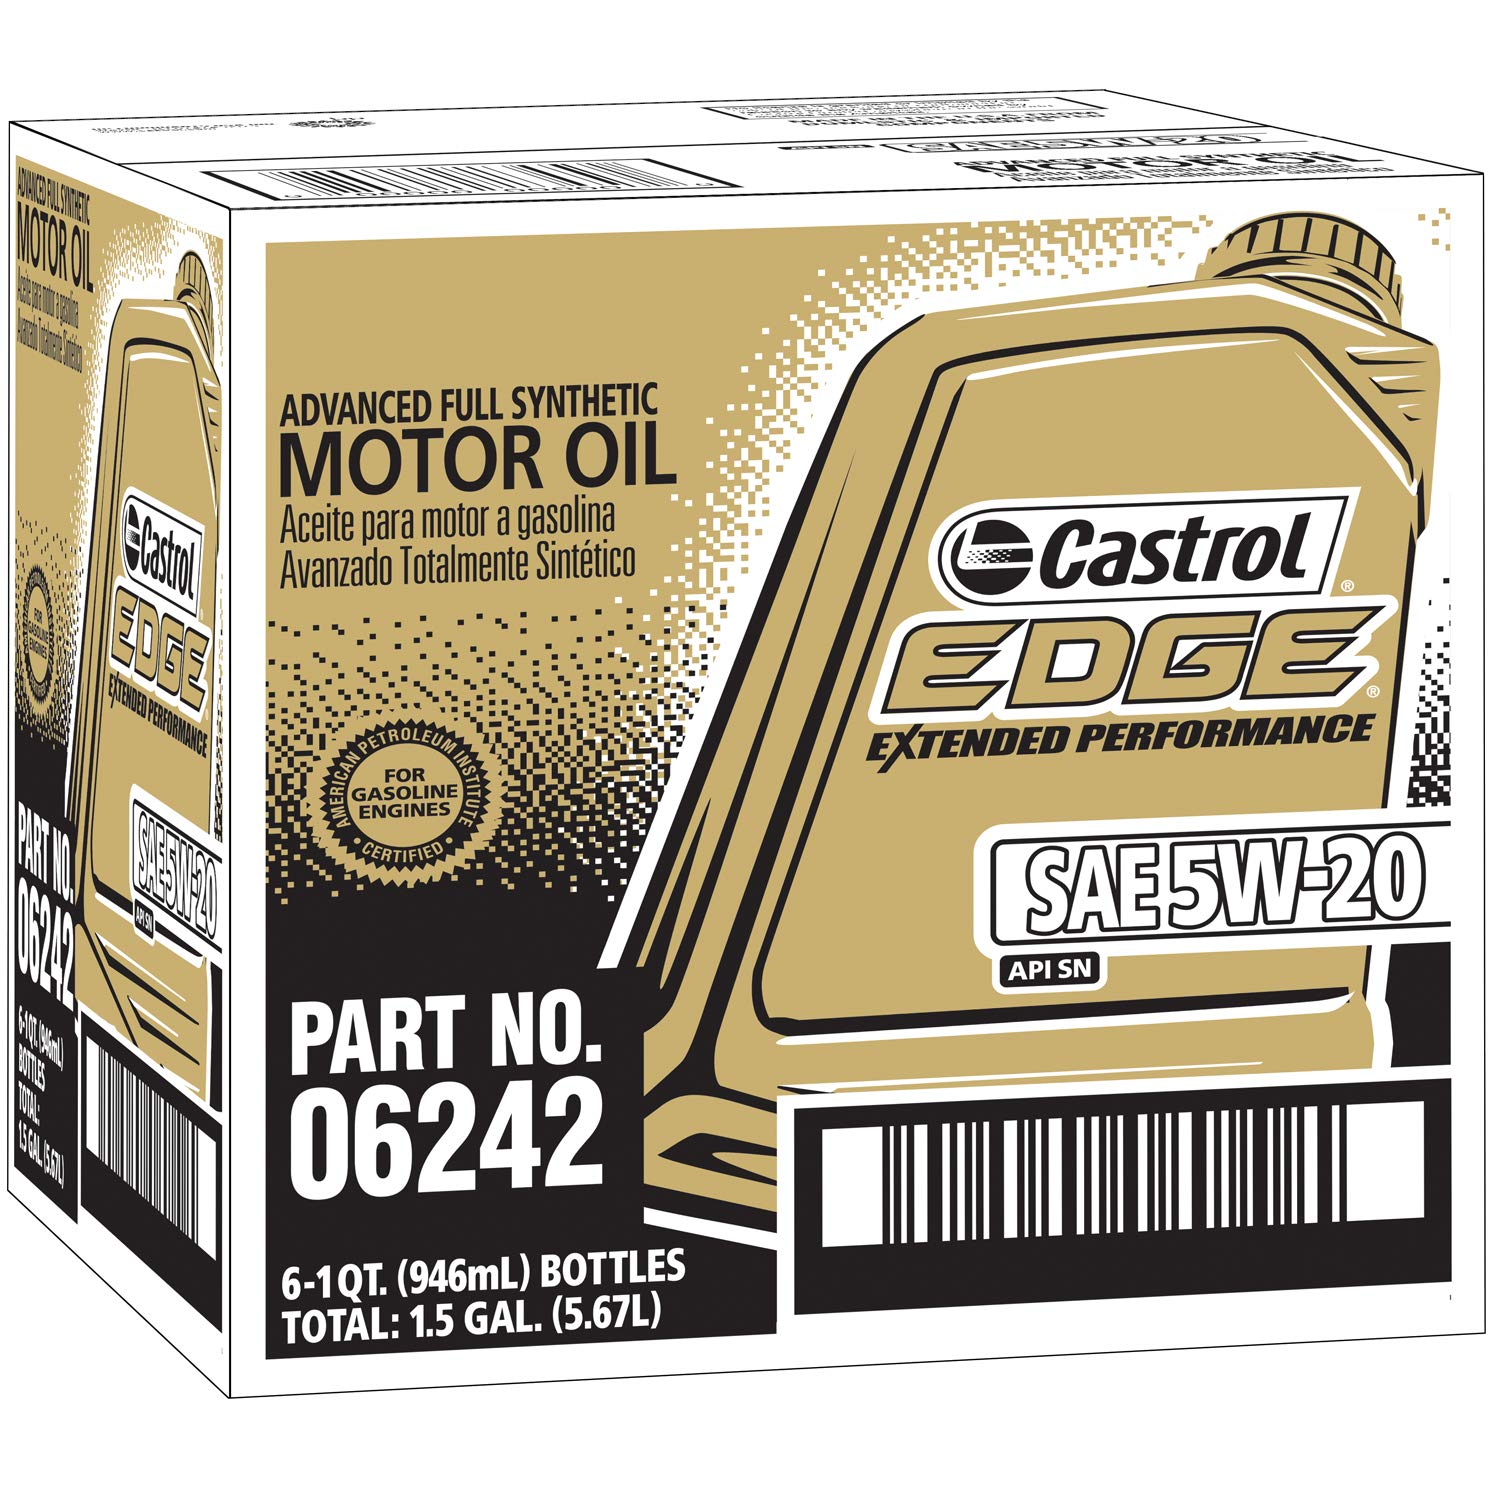 Amazon.com: Castrol 06242 EDGE Extended Performance 5W-20 Advanced Full Synthetic Motor Oil, 1 Quart, 6 Pack: Automotive